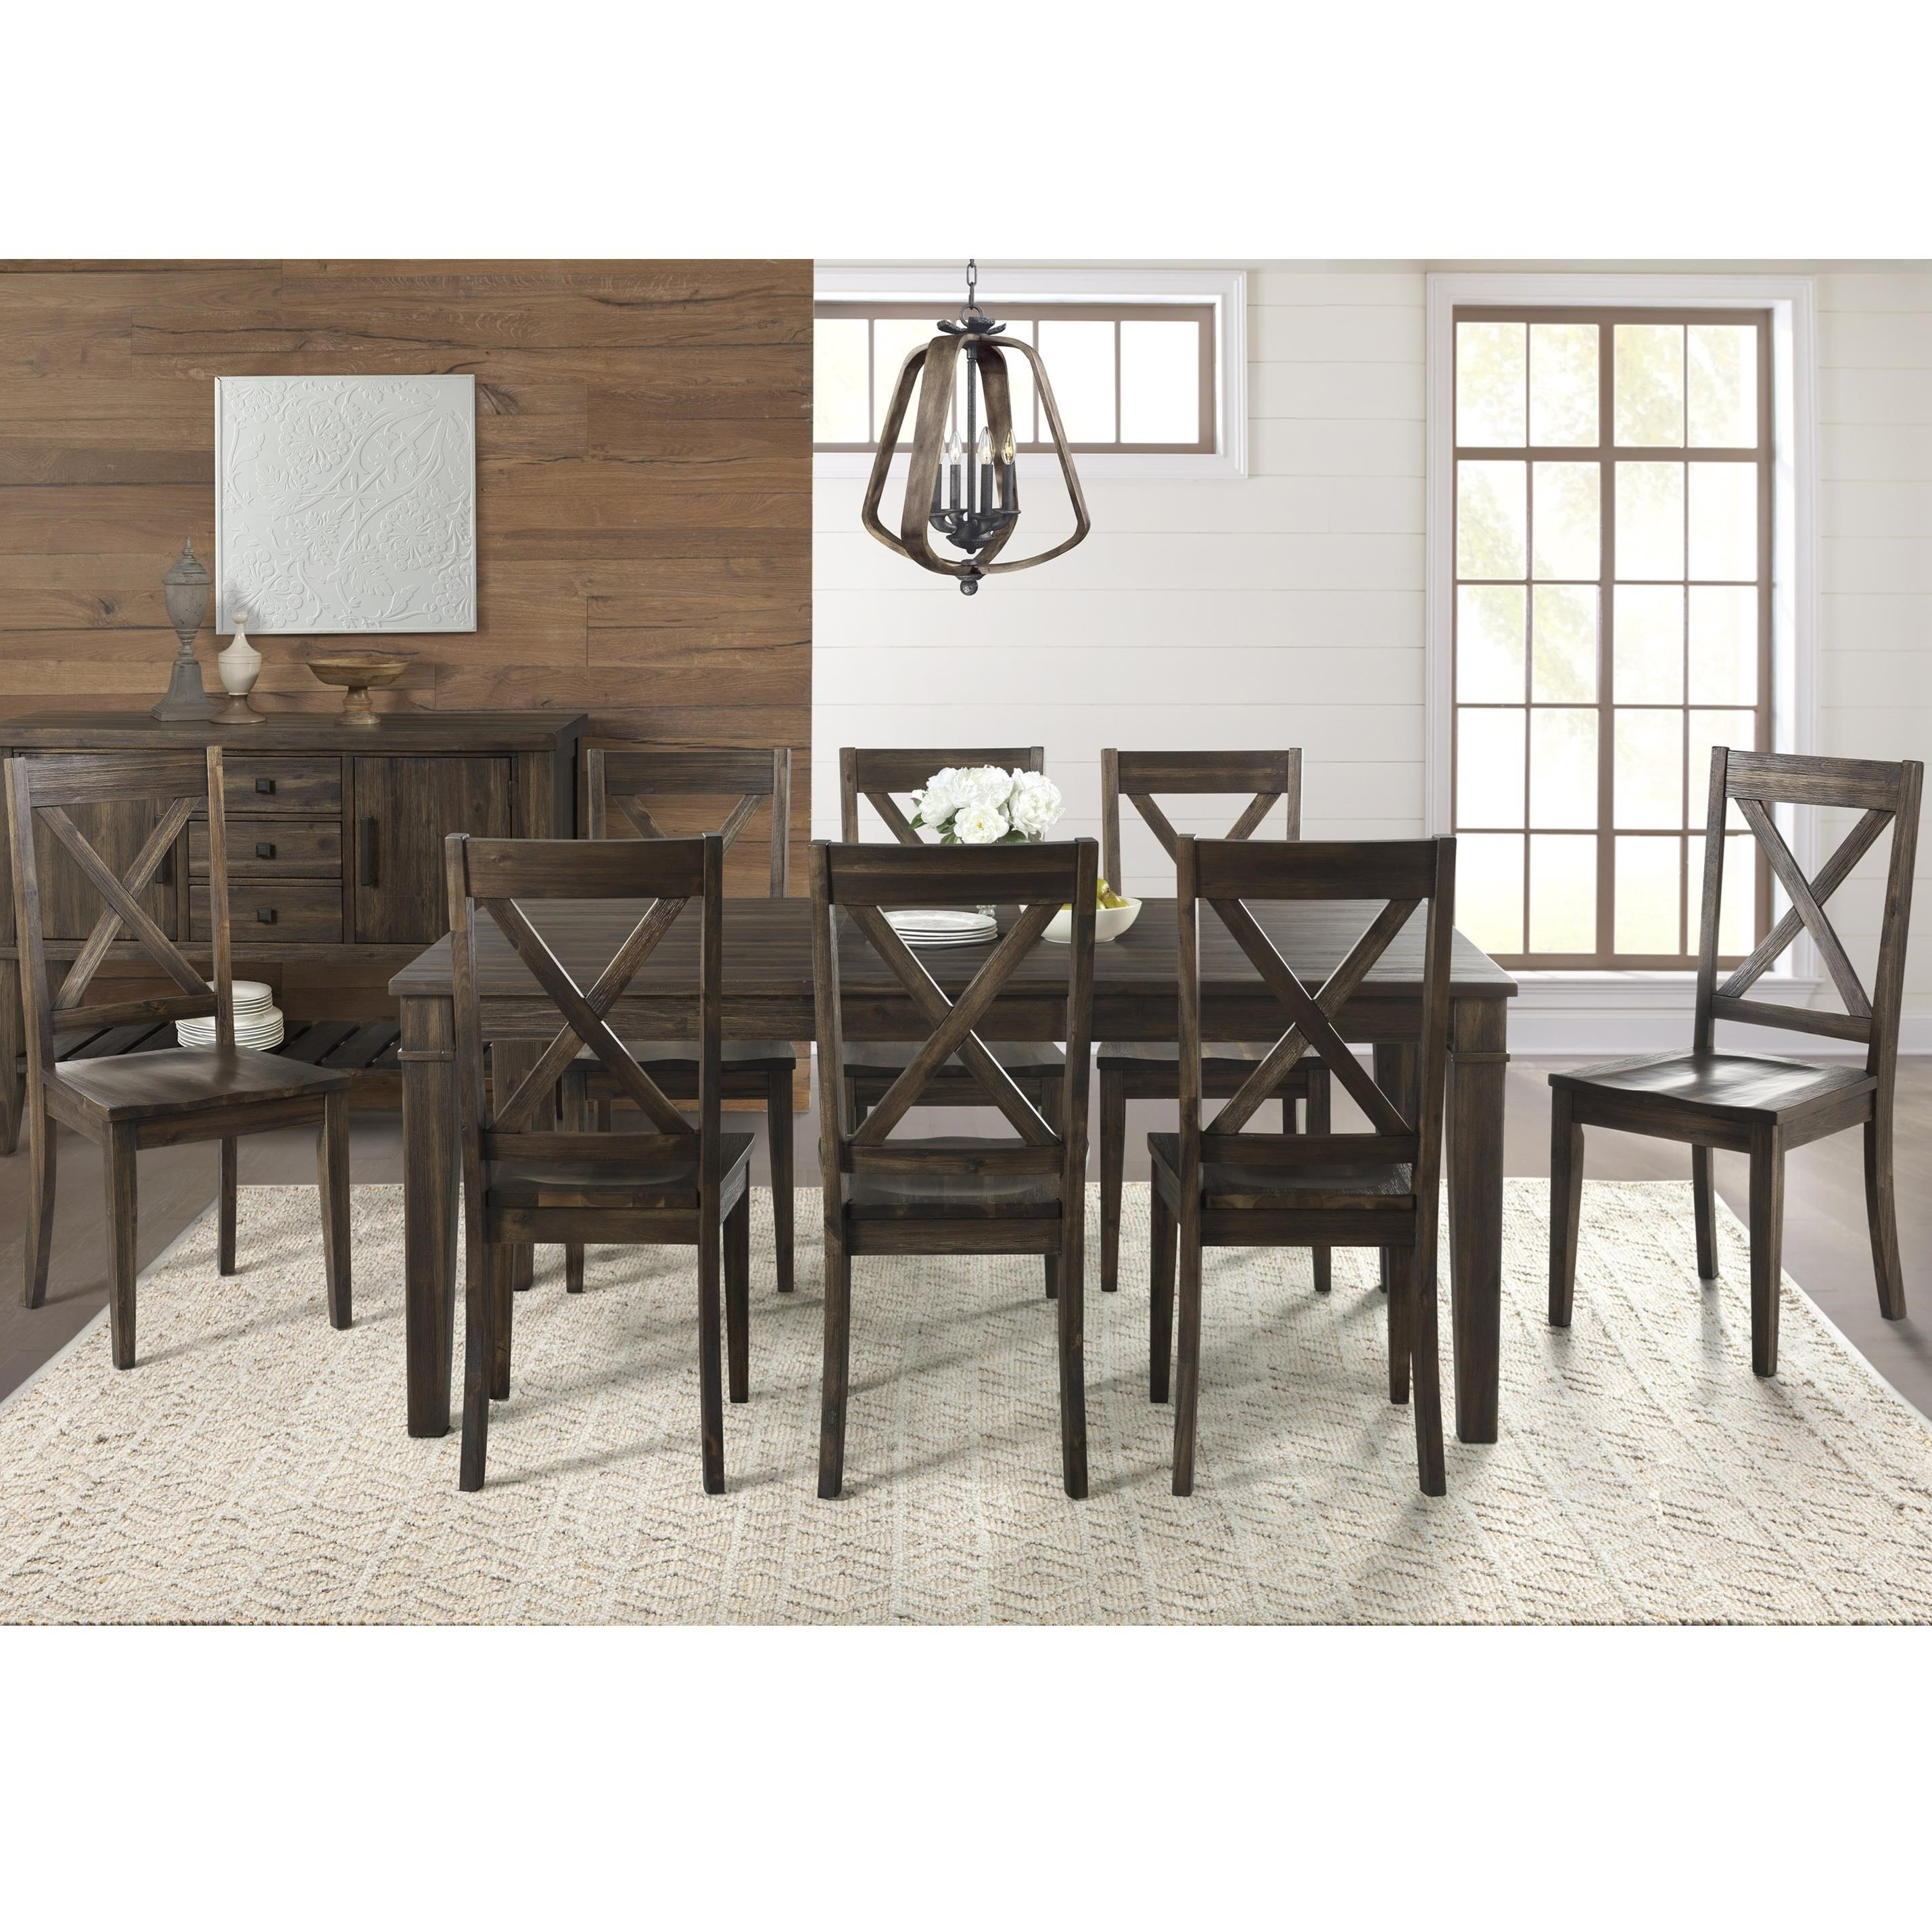 AAmerica Huron Transitional Table and Chair Set - Item Number: HUR-WR-6-09-0+8x2-47-K